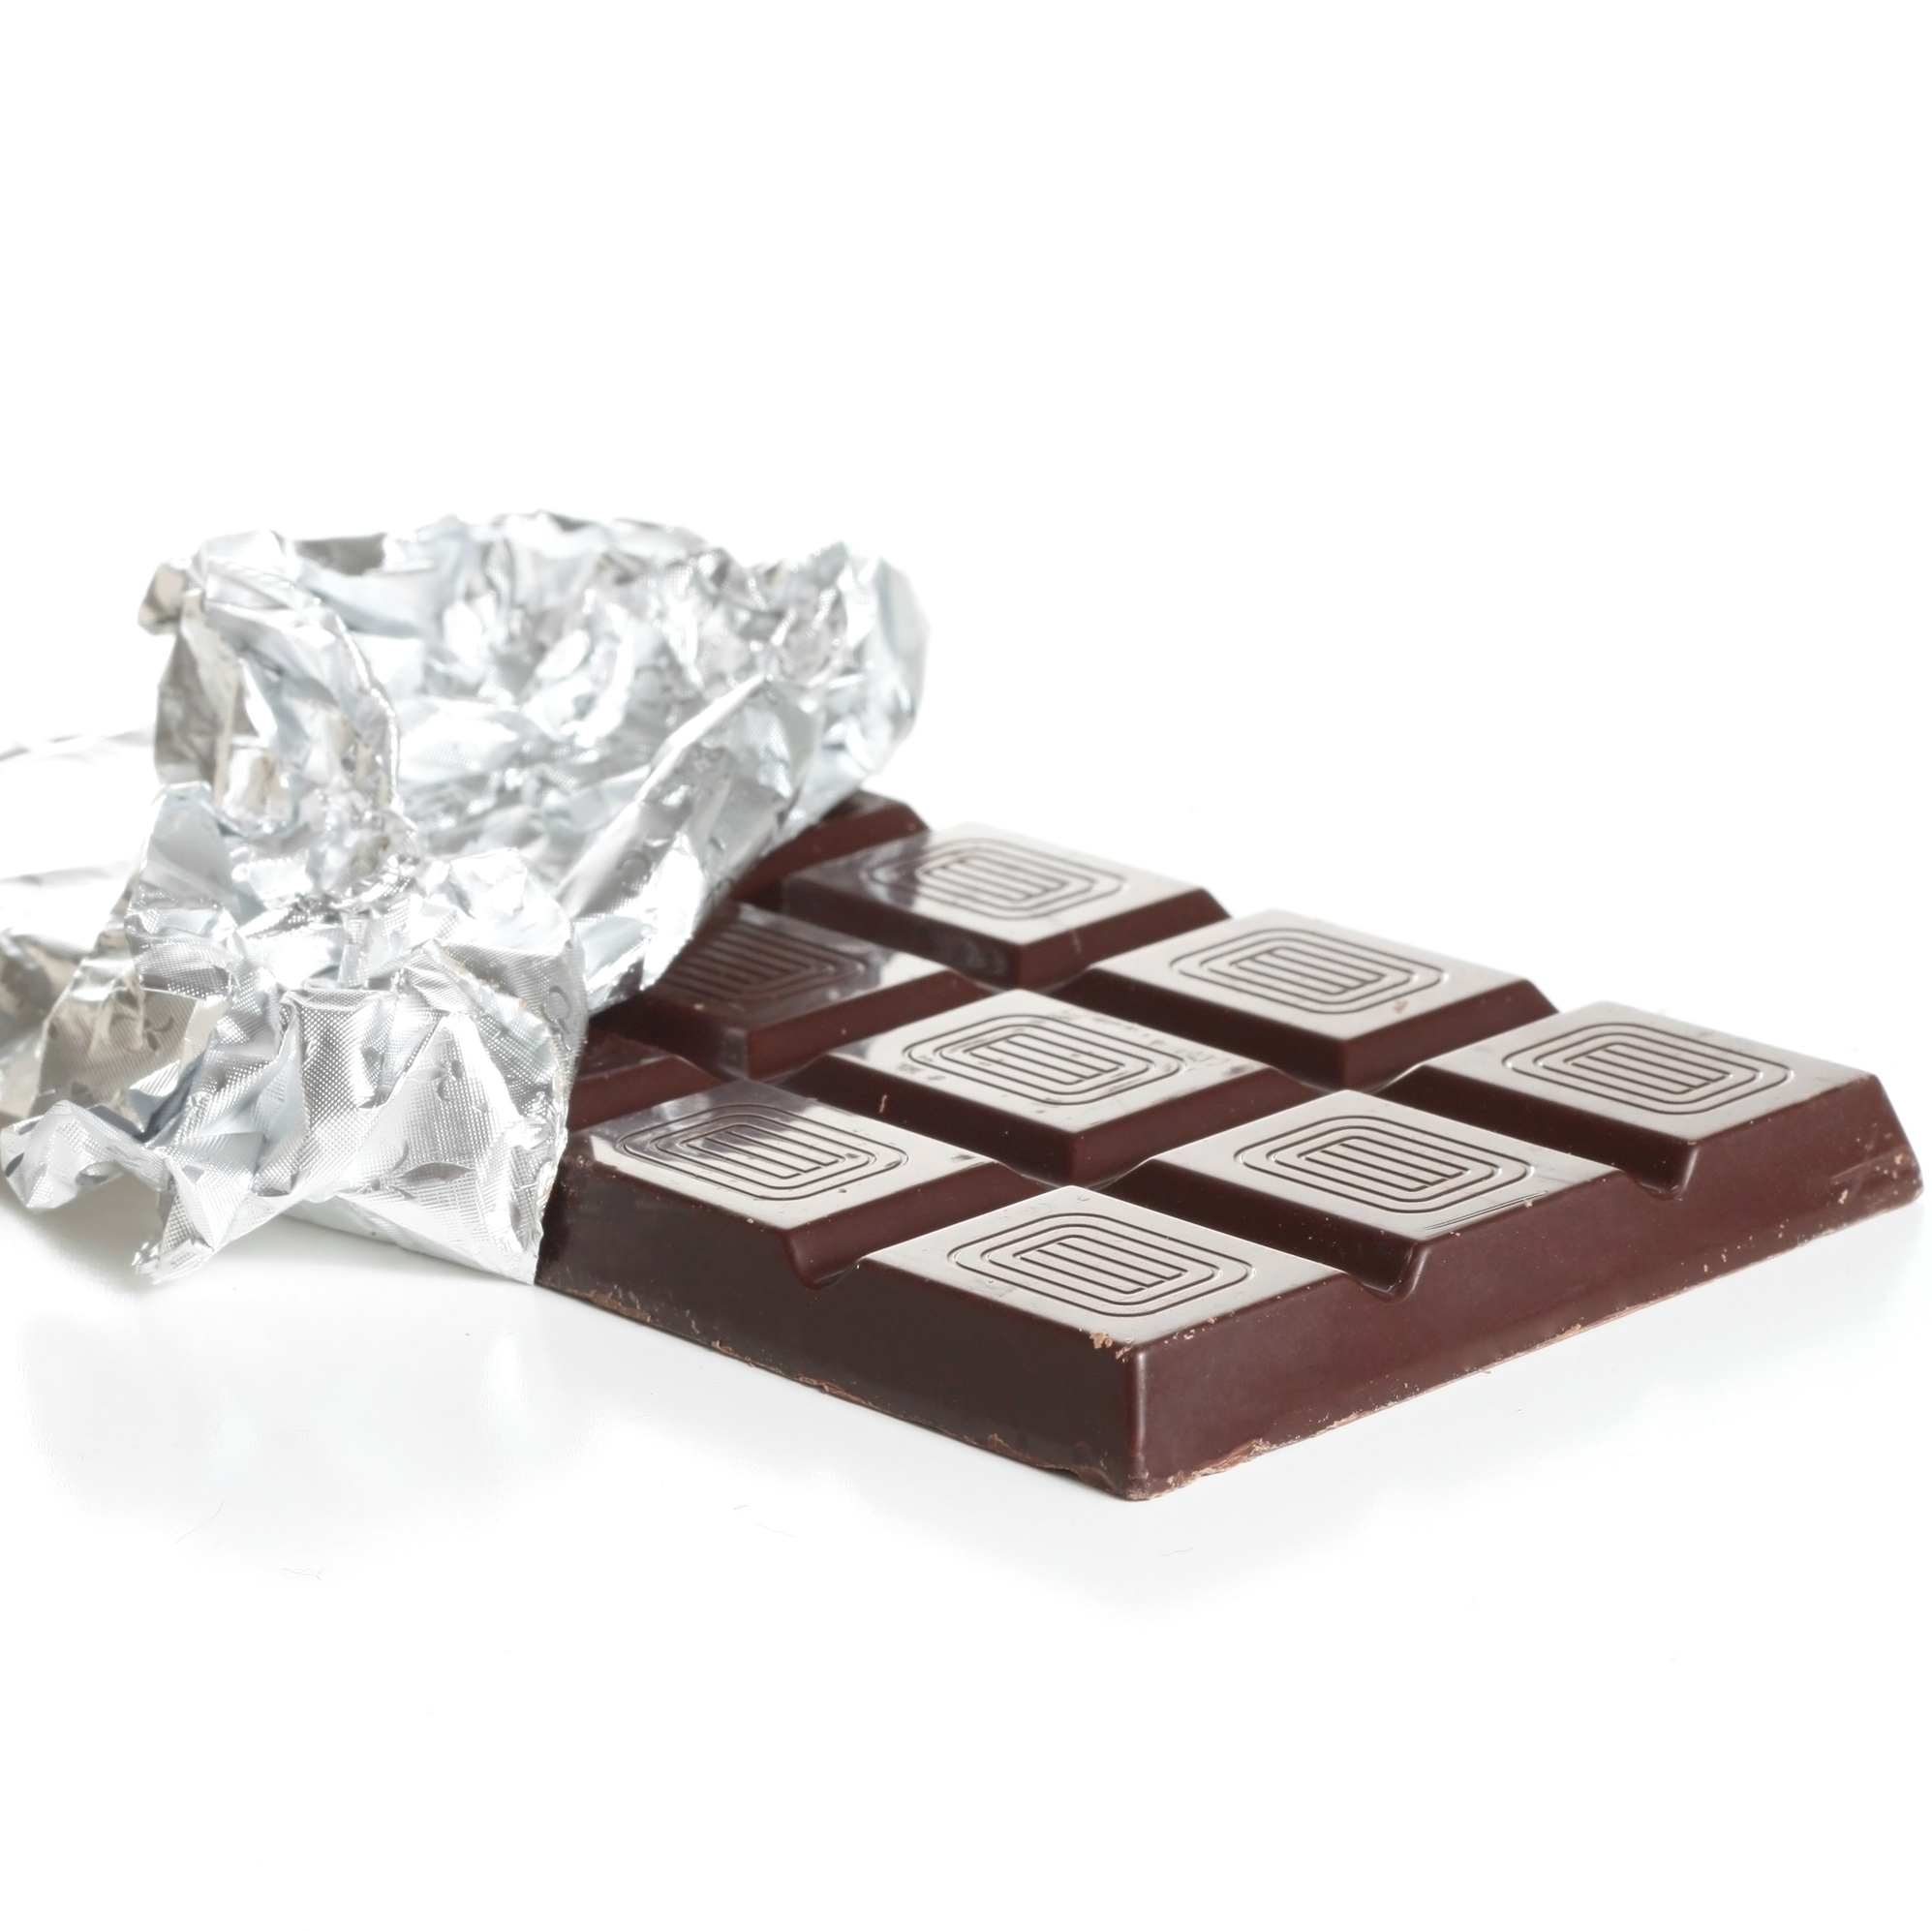 The serotonin in dark chocolate allows you to sleep better, which is why it is part of the Sleep Better Diet.